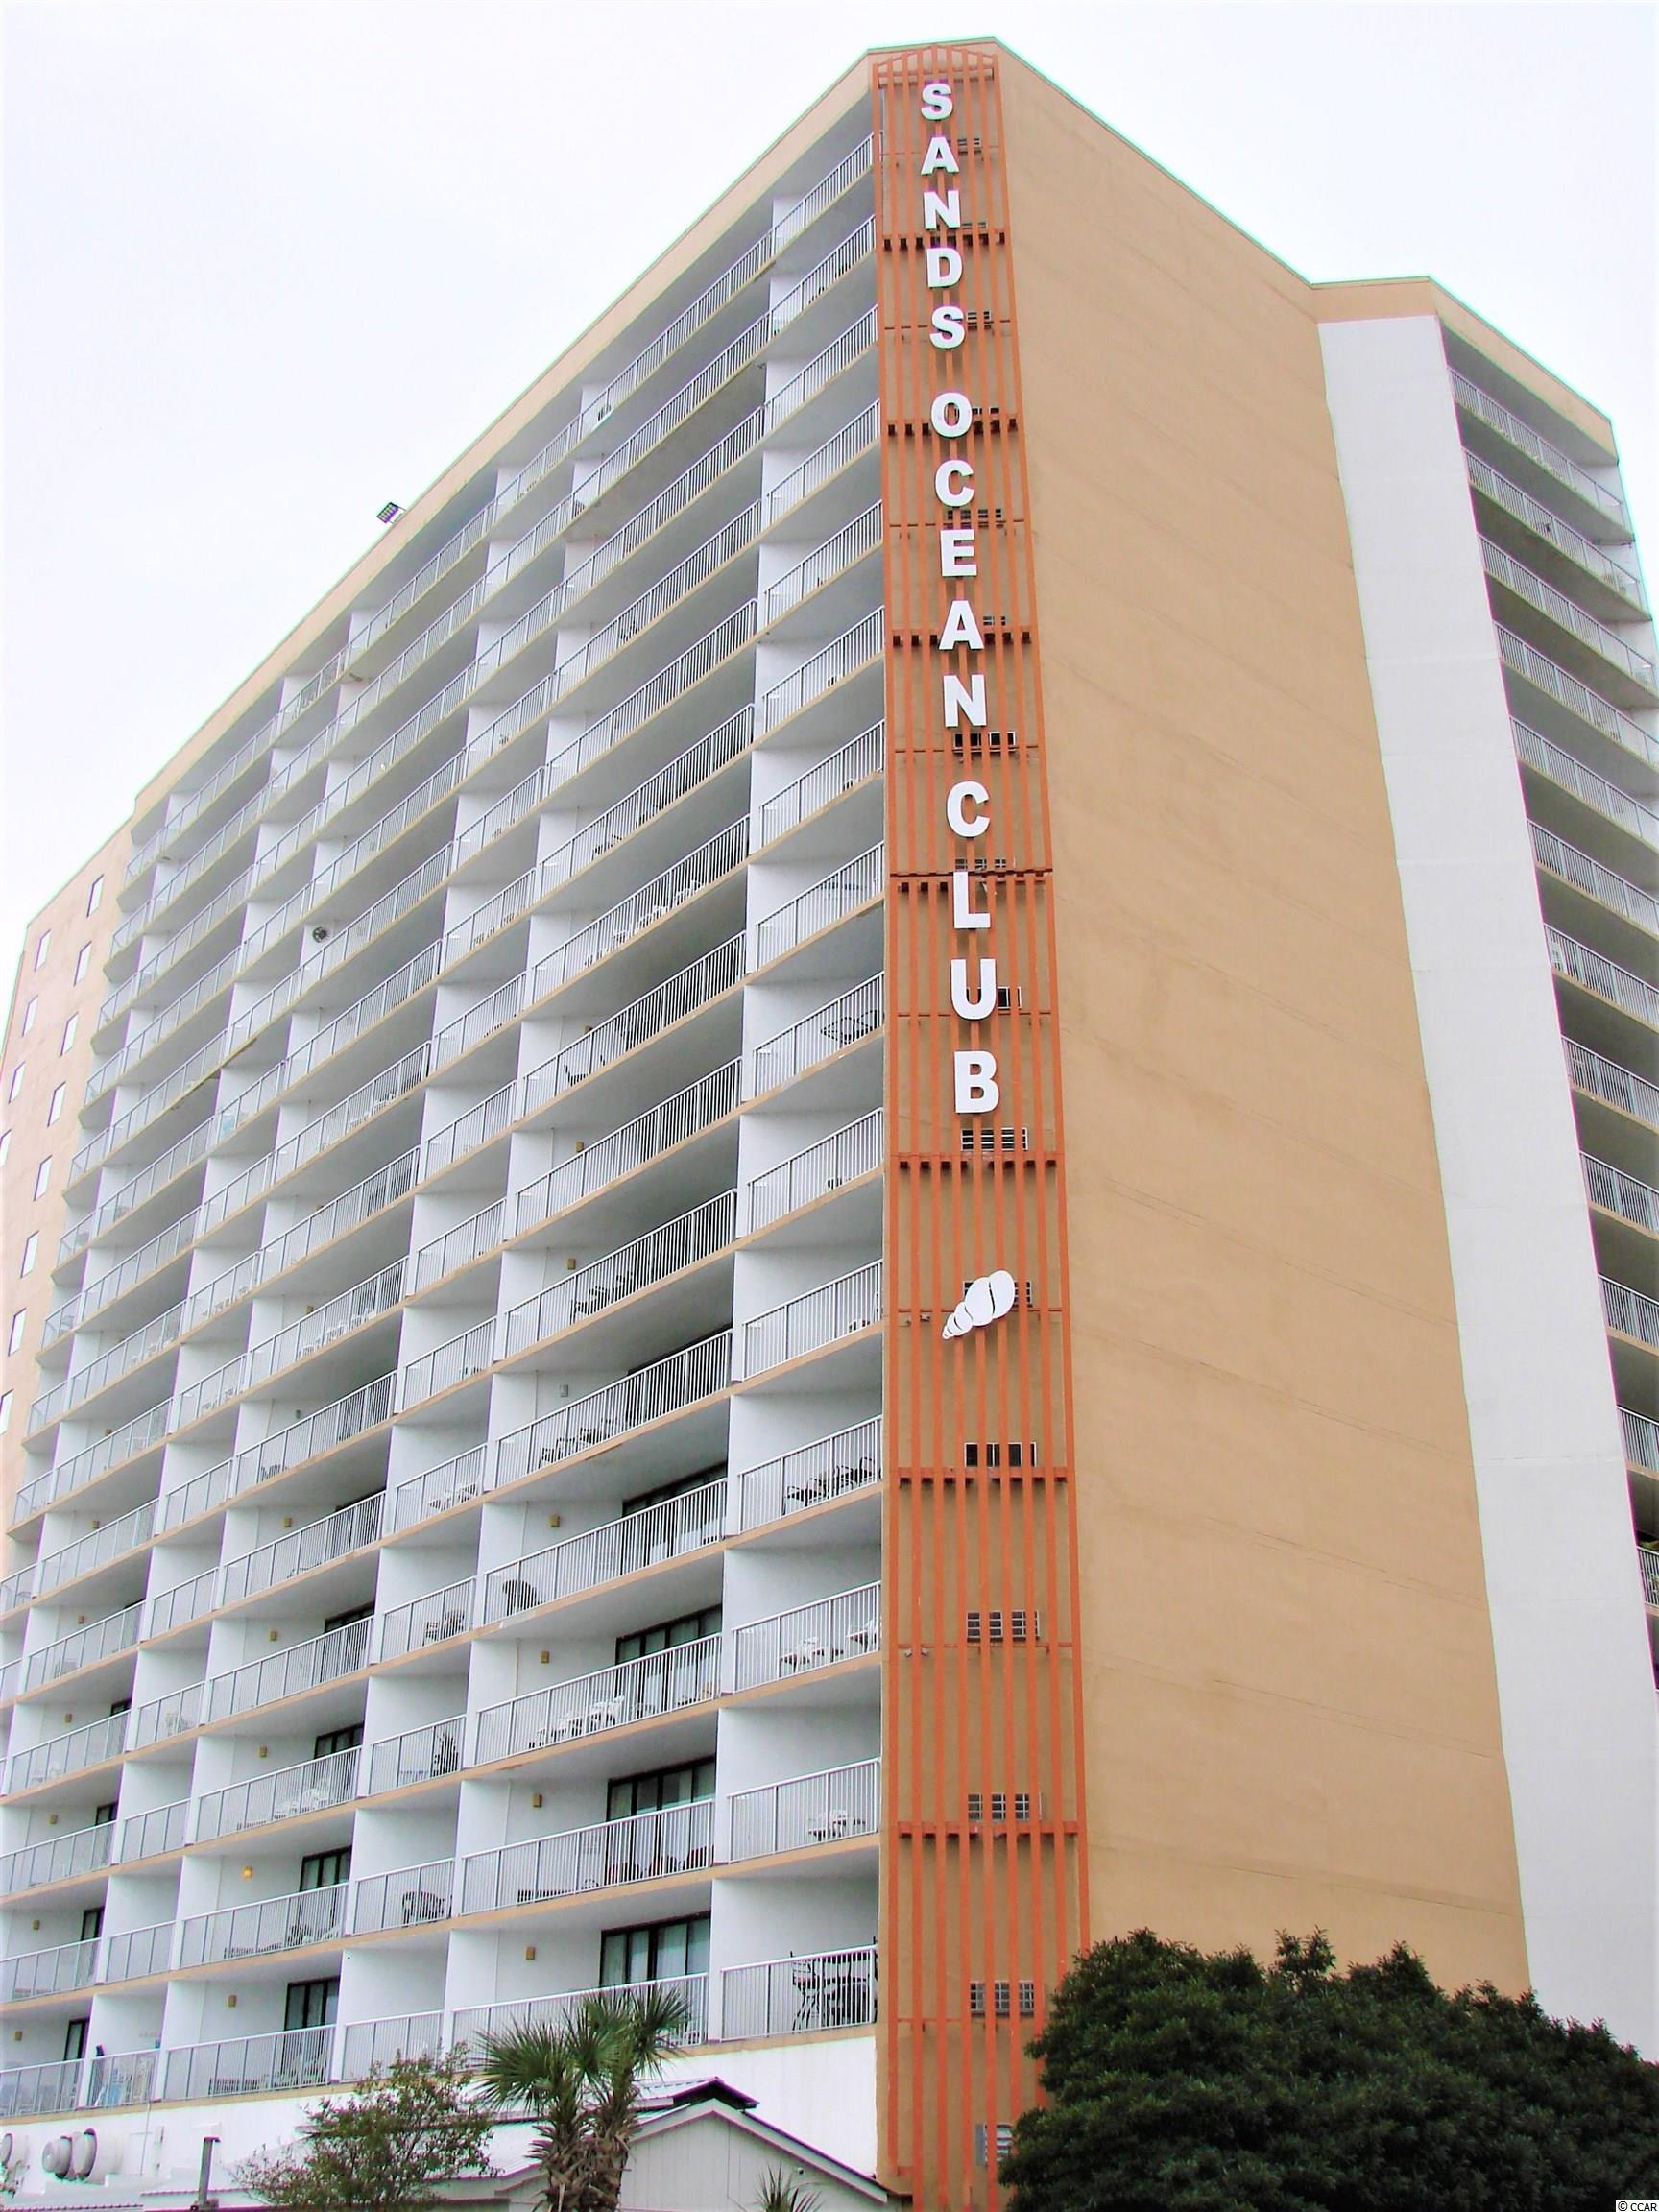 Completely remodeled and updated efficiency Oceanview condo in the highly desirable Sands Ocean Club.  The 2nd floor location makes for great access when elevators are in peak need! Condo is being sold furnished with new luxury vinyl flooring, fresh paint and fairly new furnishings incl 2 full size beds. Kitchen finished with a dishwasher. Balcony has excellent views on the north side of the building overlooking the pier and its northern location offers its occupants a little buffer so that the later evening music coming from Ocean Annie's won't keep you awake.  Sands Ocean Club has an abundance of amenities including indoor pool, hot tub, outdoor pool, lazy river, Spa access, fitness room, onsite restaurant, garage parking, valet and more! Information deemed to be reliable however buyer responsible for verification.